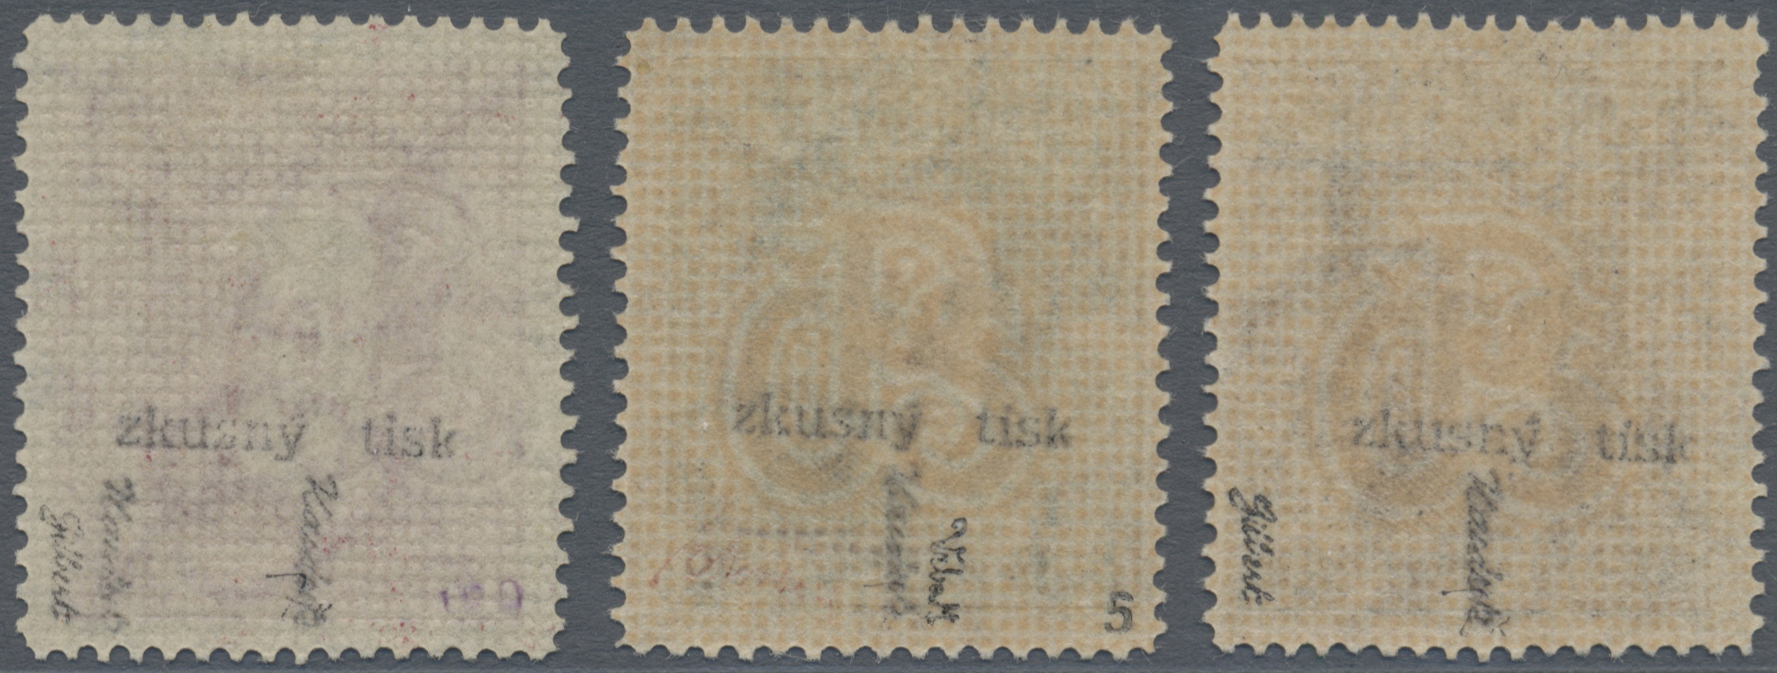 Lot 1720 - tschechoslowakei  -  Auktionshaus Christoph Gärtner GmbH & Co. KG Auction #41 Special auction part two